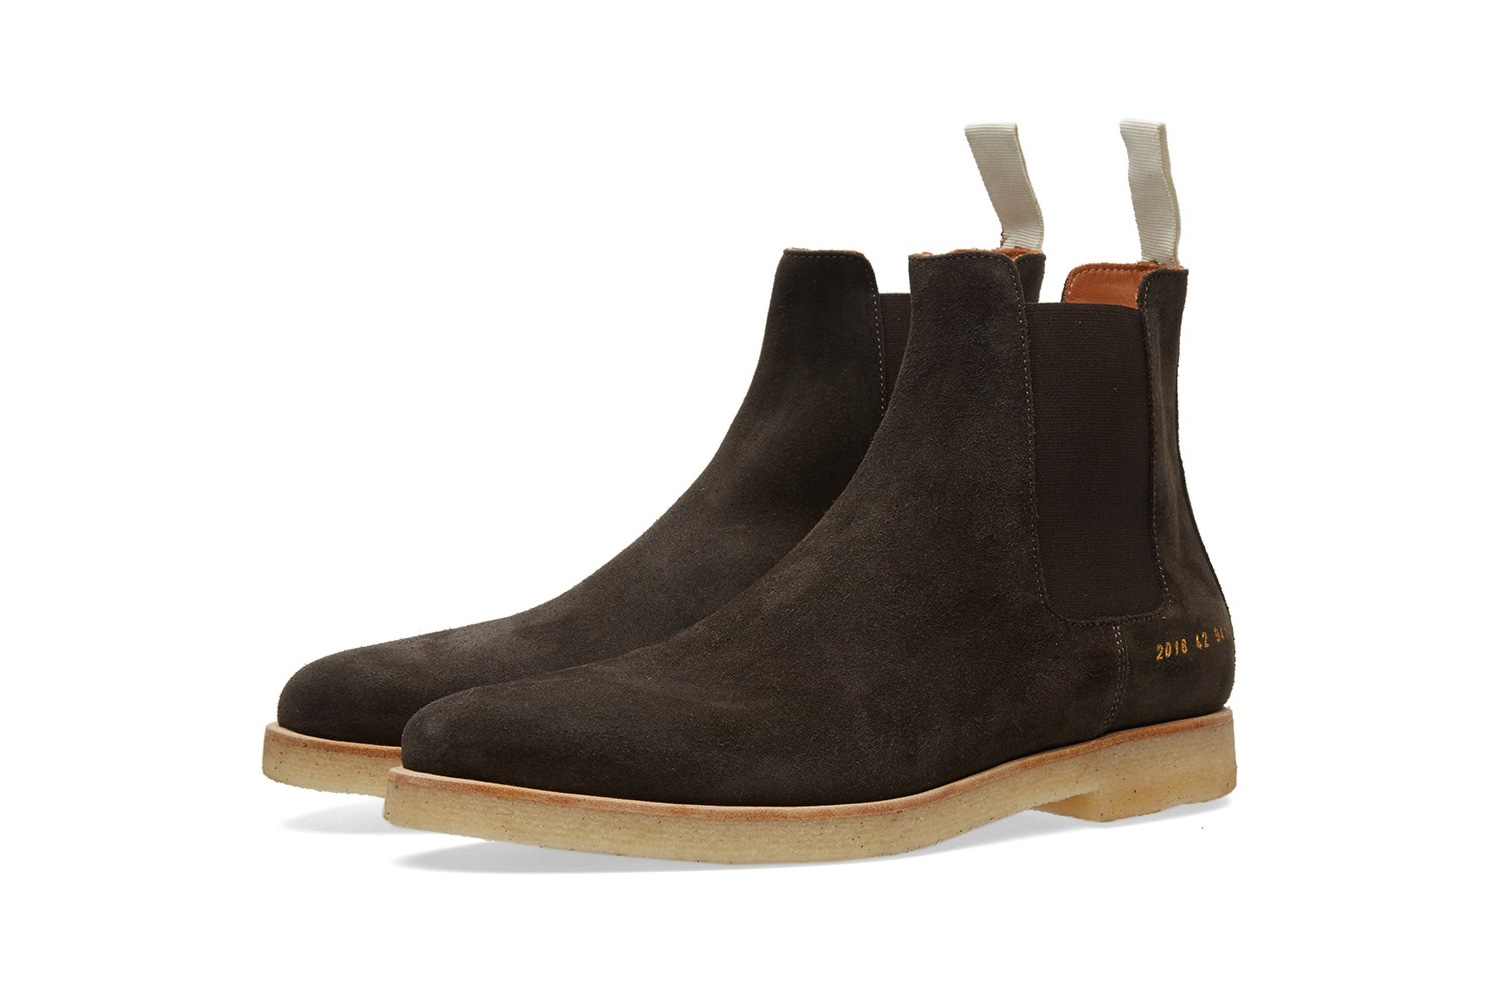 common projects boots Sneakers common projects, leather 100% common projects men's 18971302 beige suede ankle boots by common projects $66000 common project historic photos.